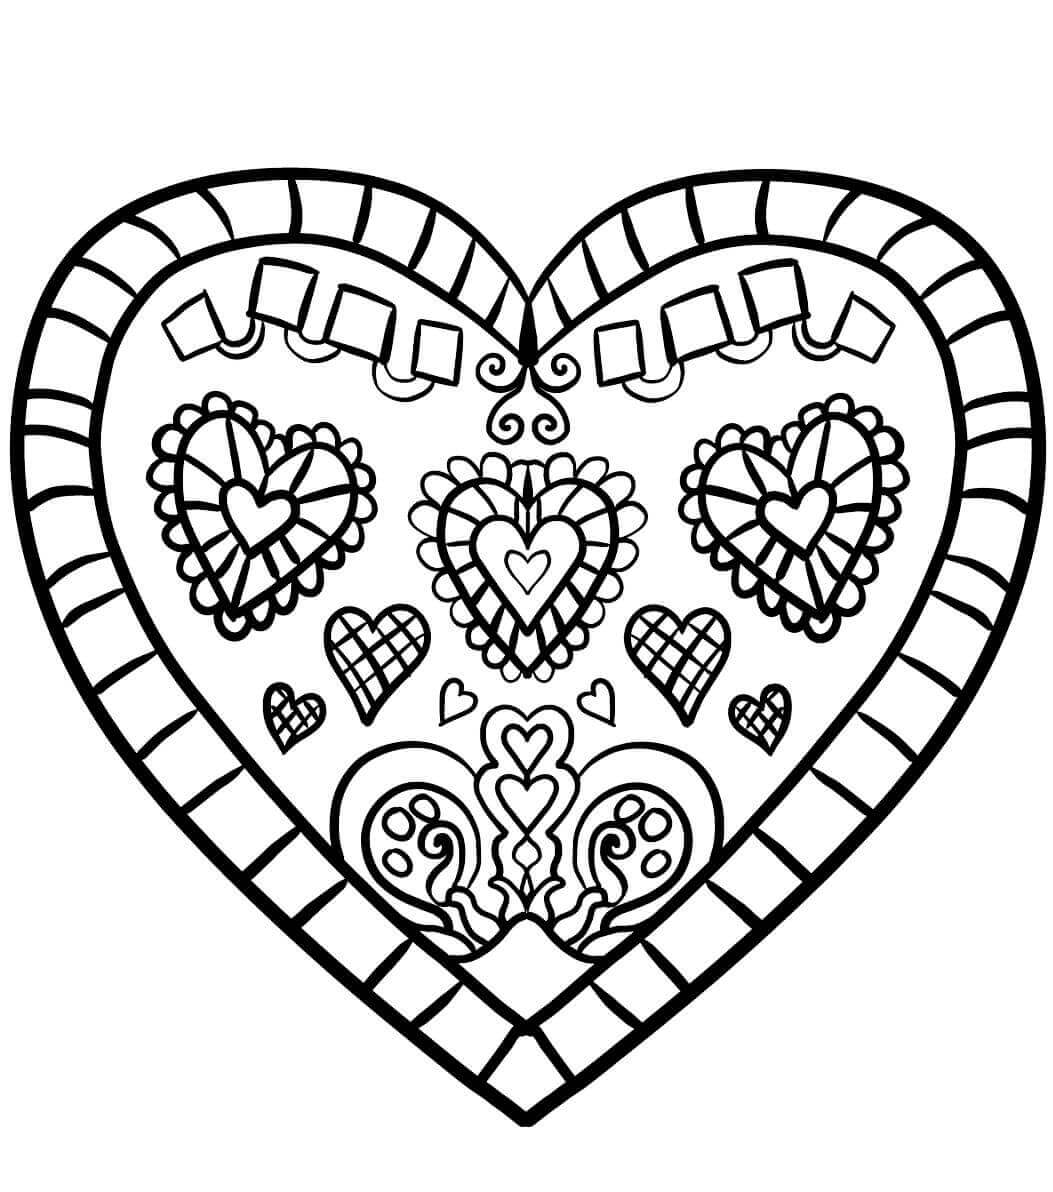 coloring pages with hearts free printable heart coloring pages for kids pages coloring with hearts